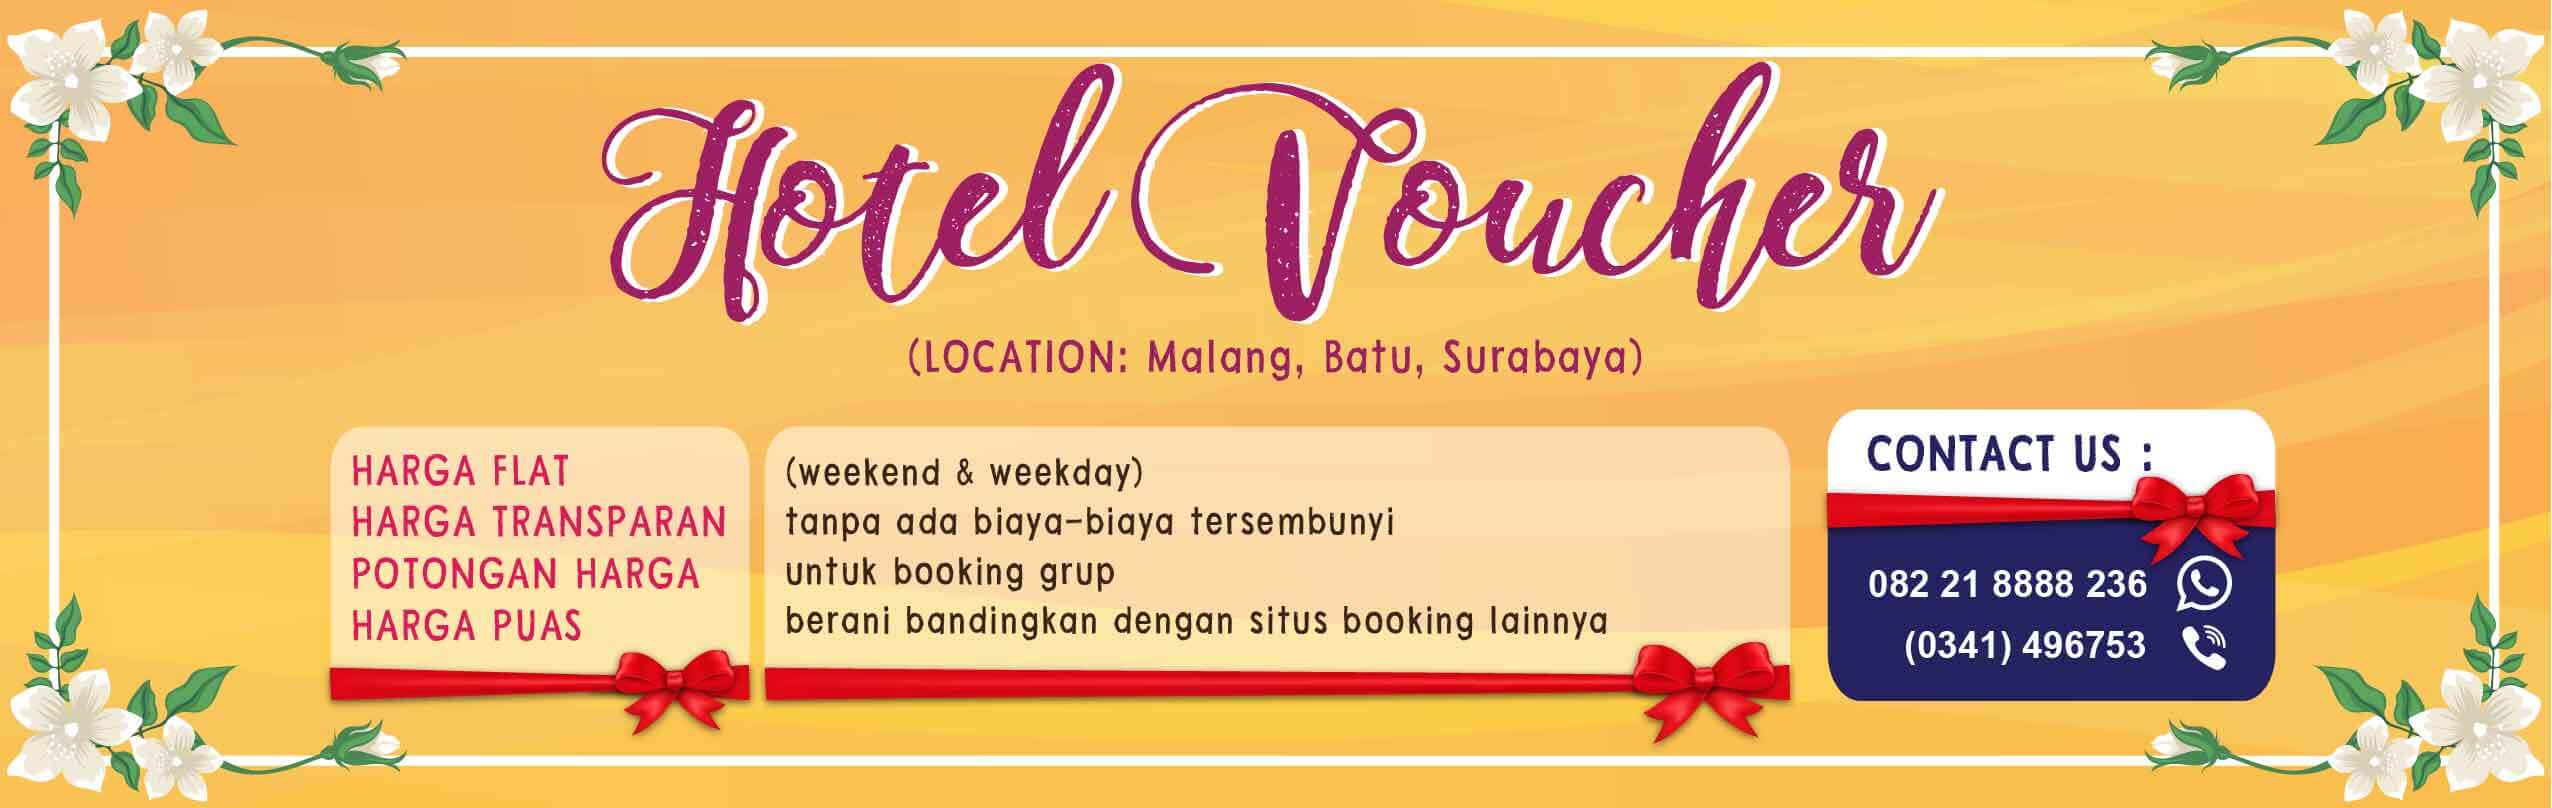 voucher hotel malang ongistravel